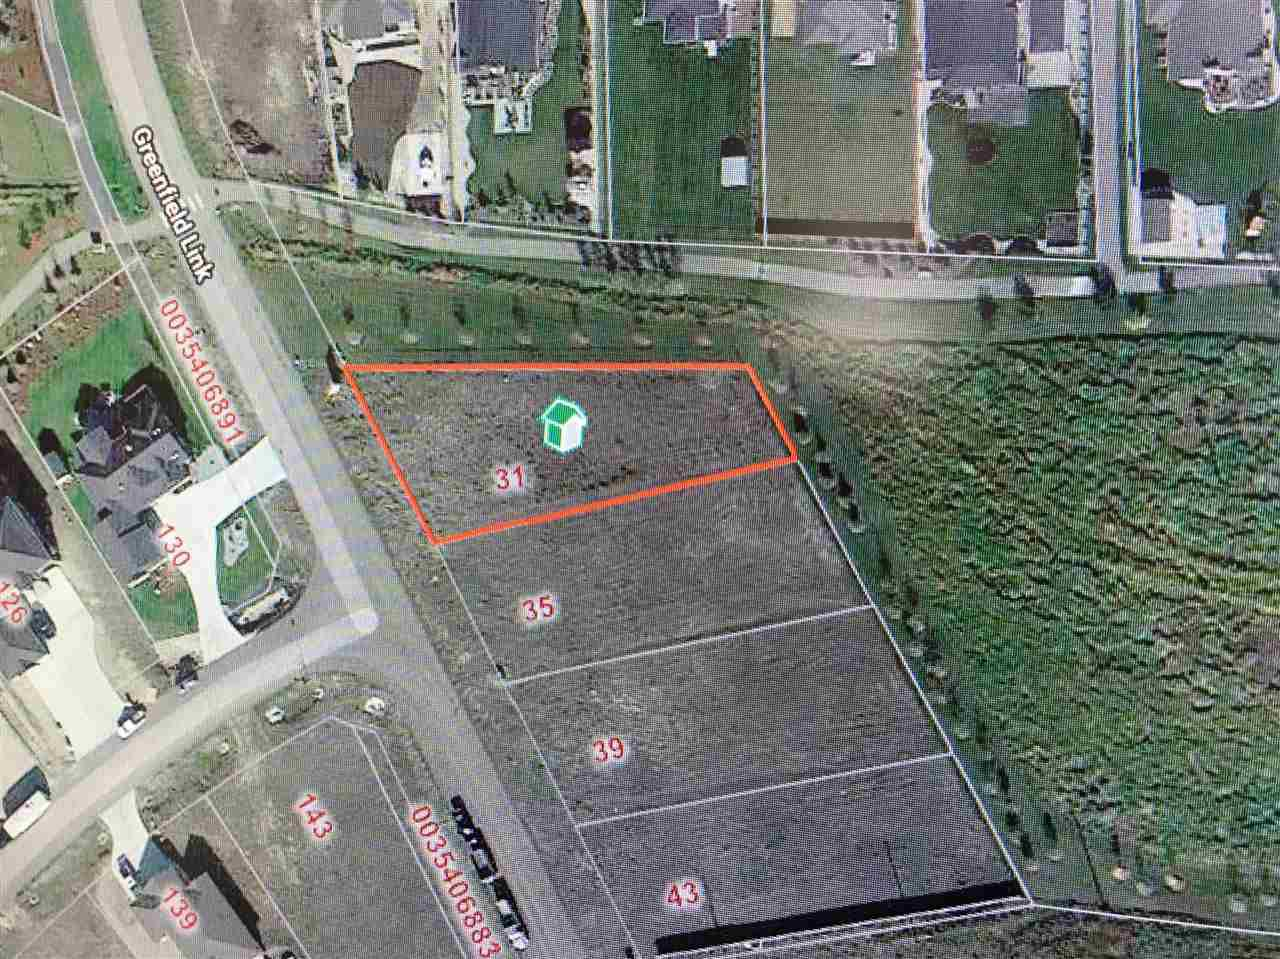 Main Photo: 31 GREENFIELD Link: Fort Saskatchewan Vacant Lot for sale : MLS®# E4128533